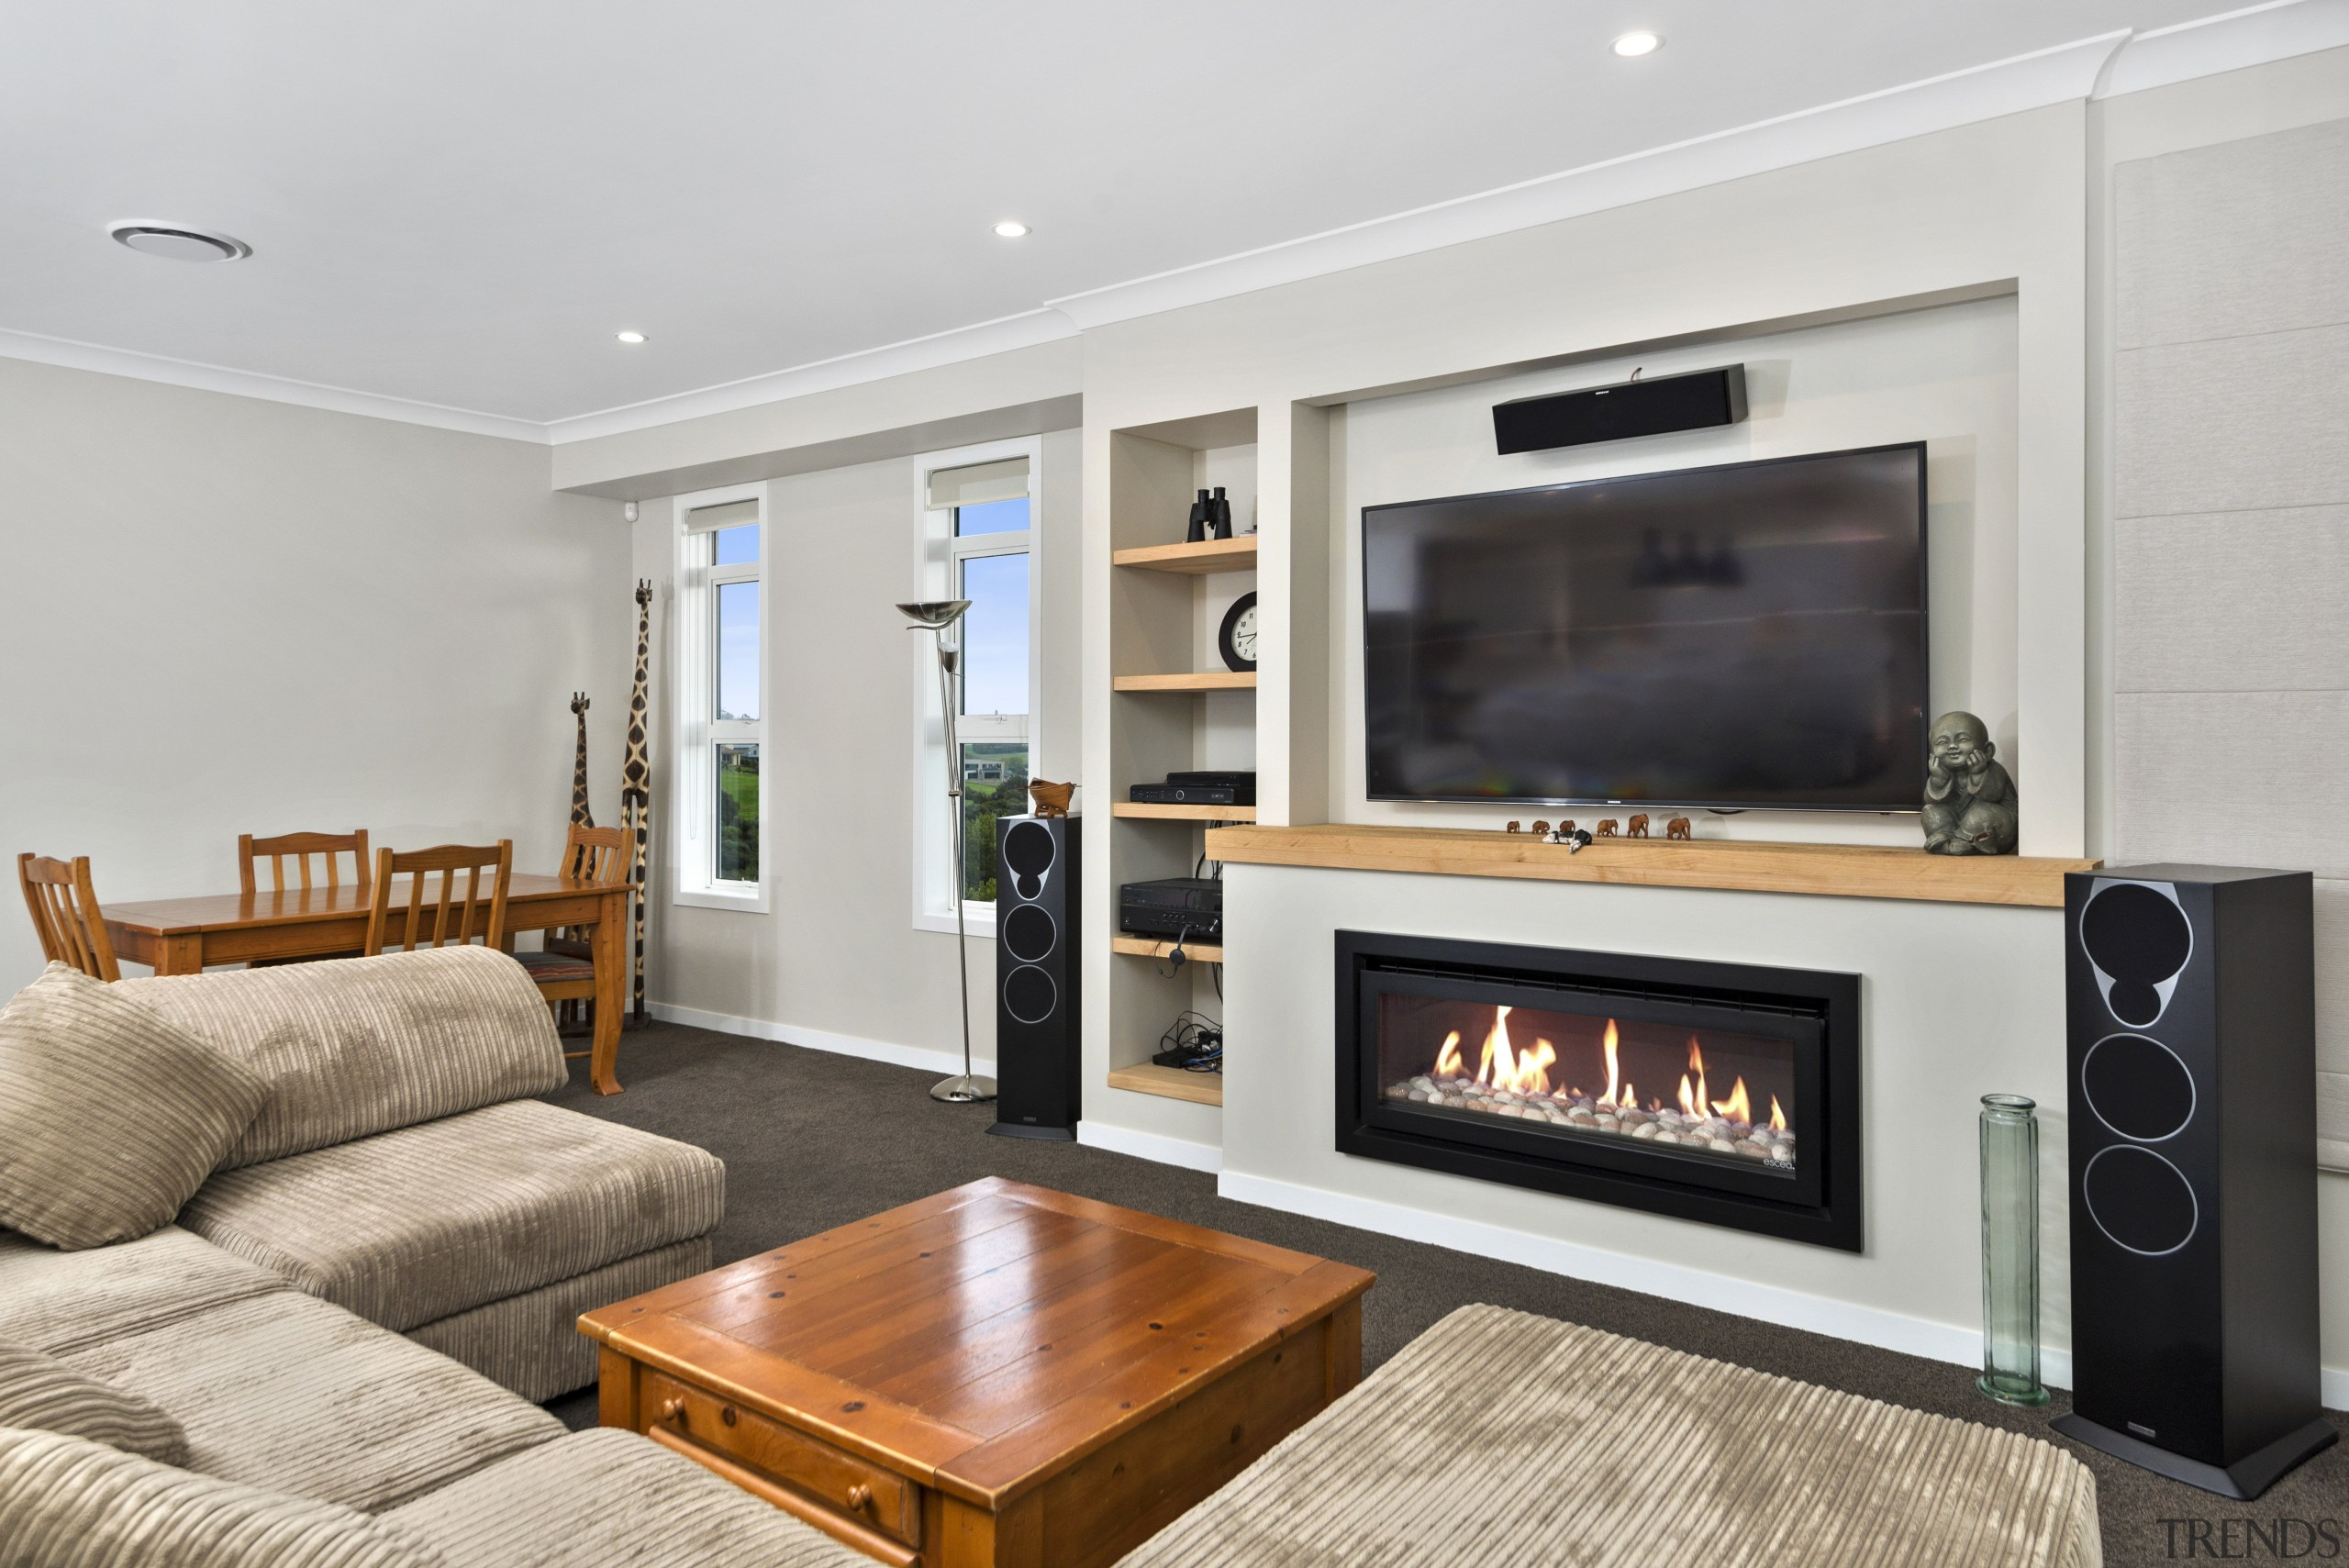 A hassle-free built-in feature gas fire adds ambience fireplace, hearth, interior design, living room, property, real estate, room, gray